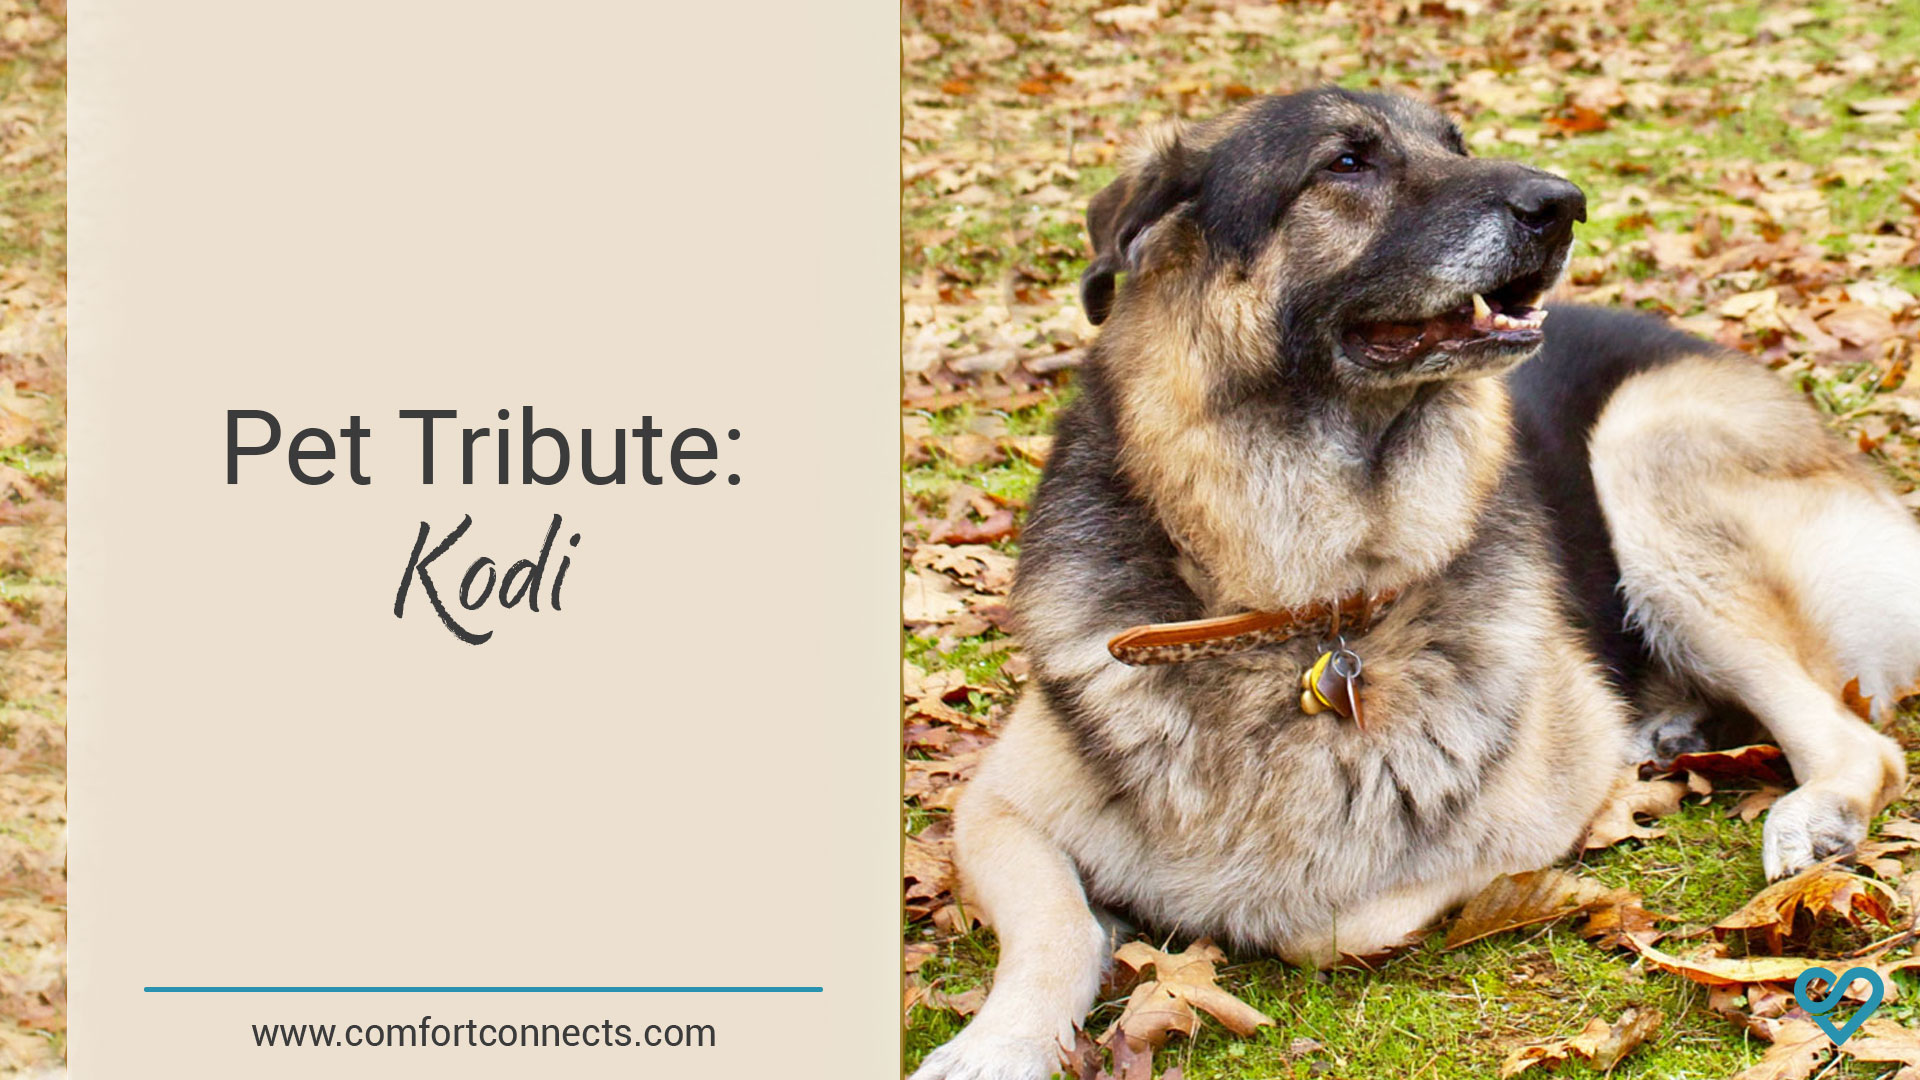 Pet Tribute: Kodi